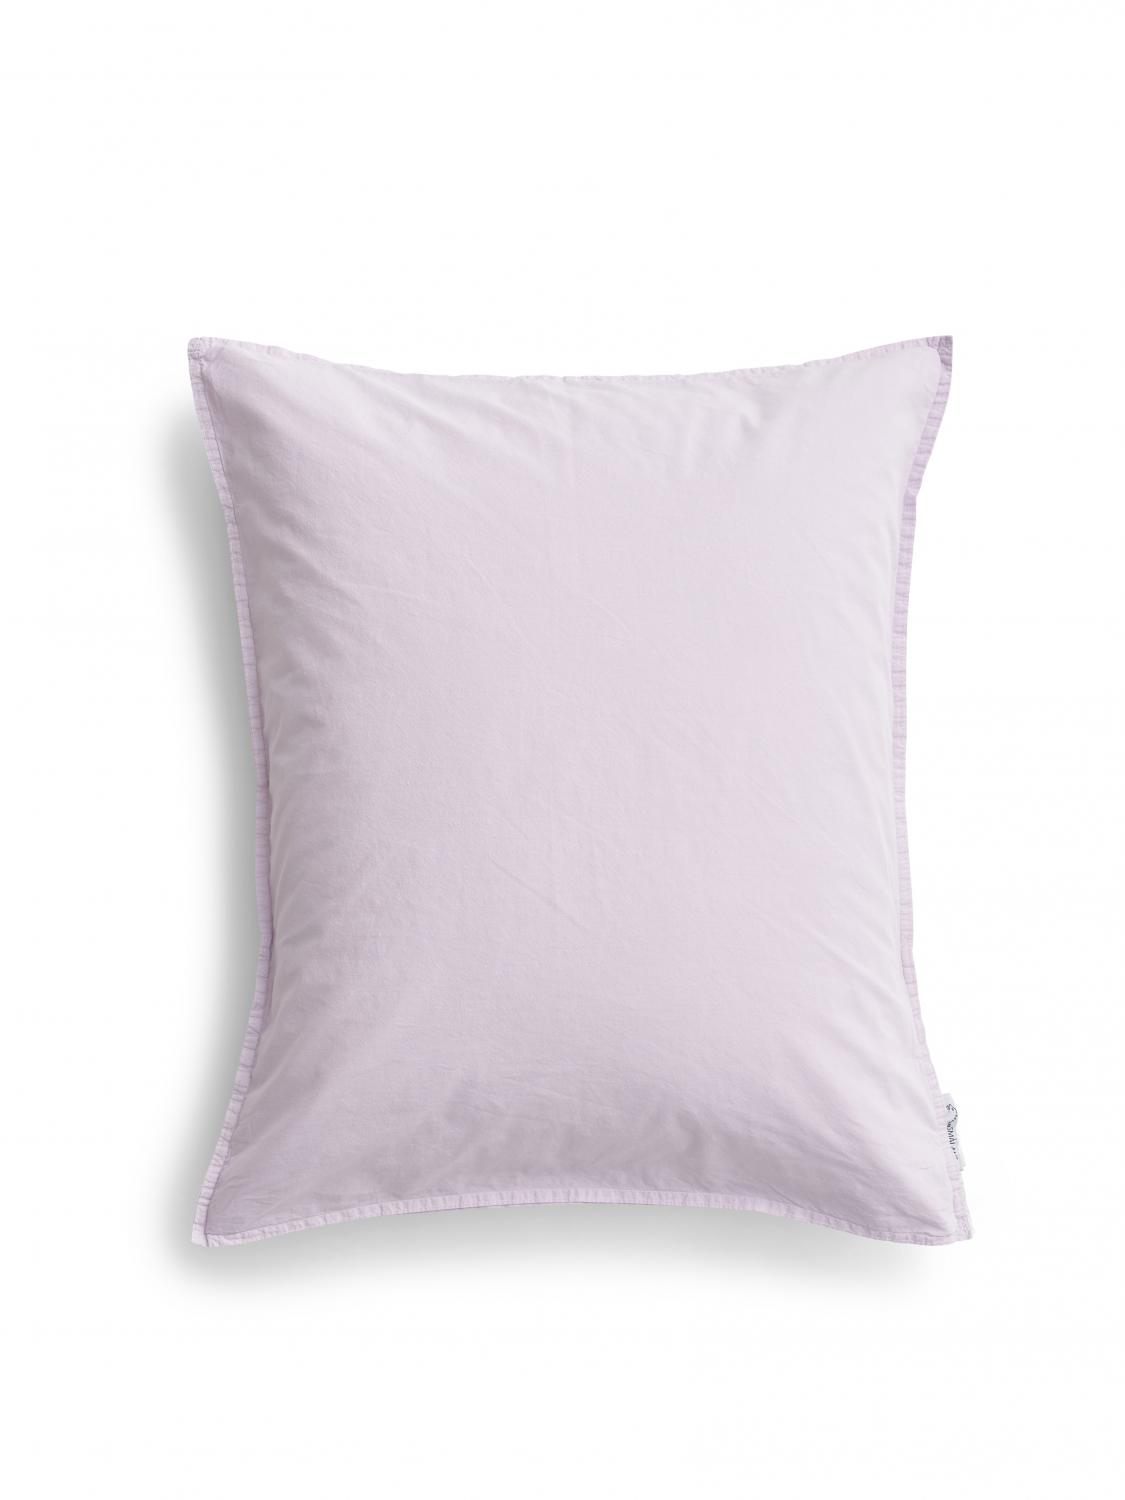 50x60cm Pillowcase Crinkle Lilac